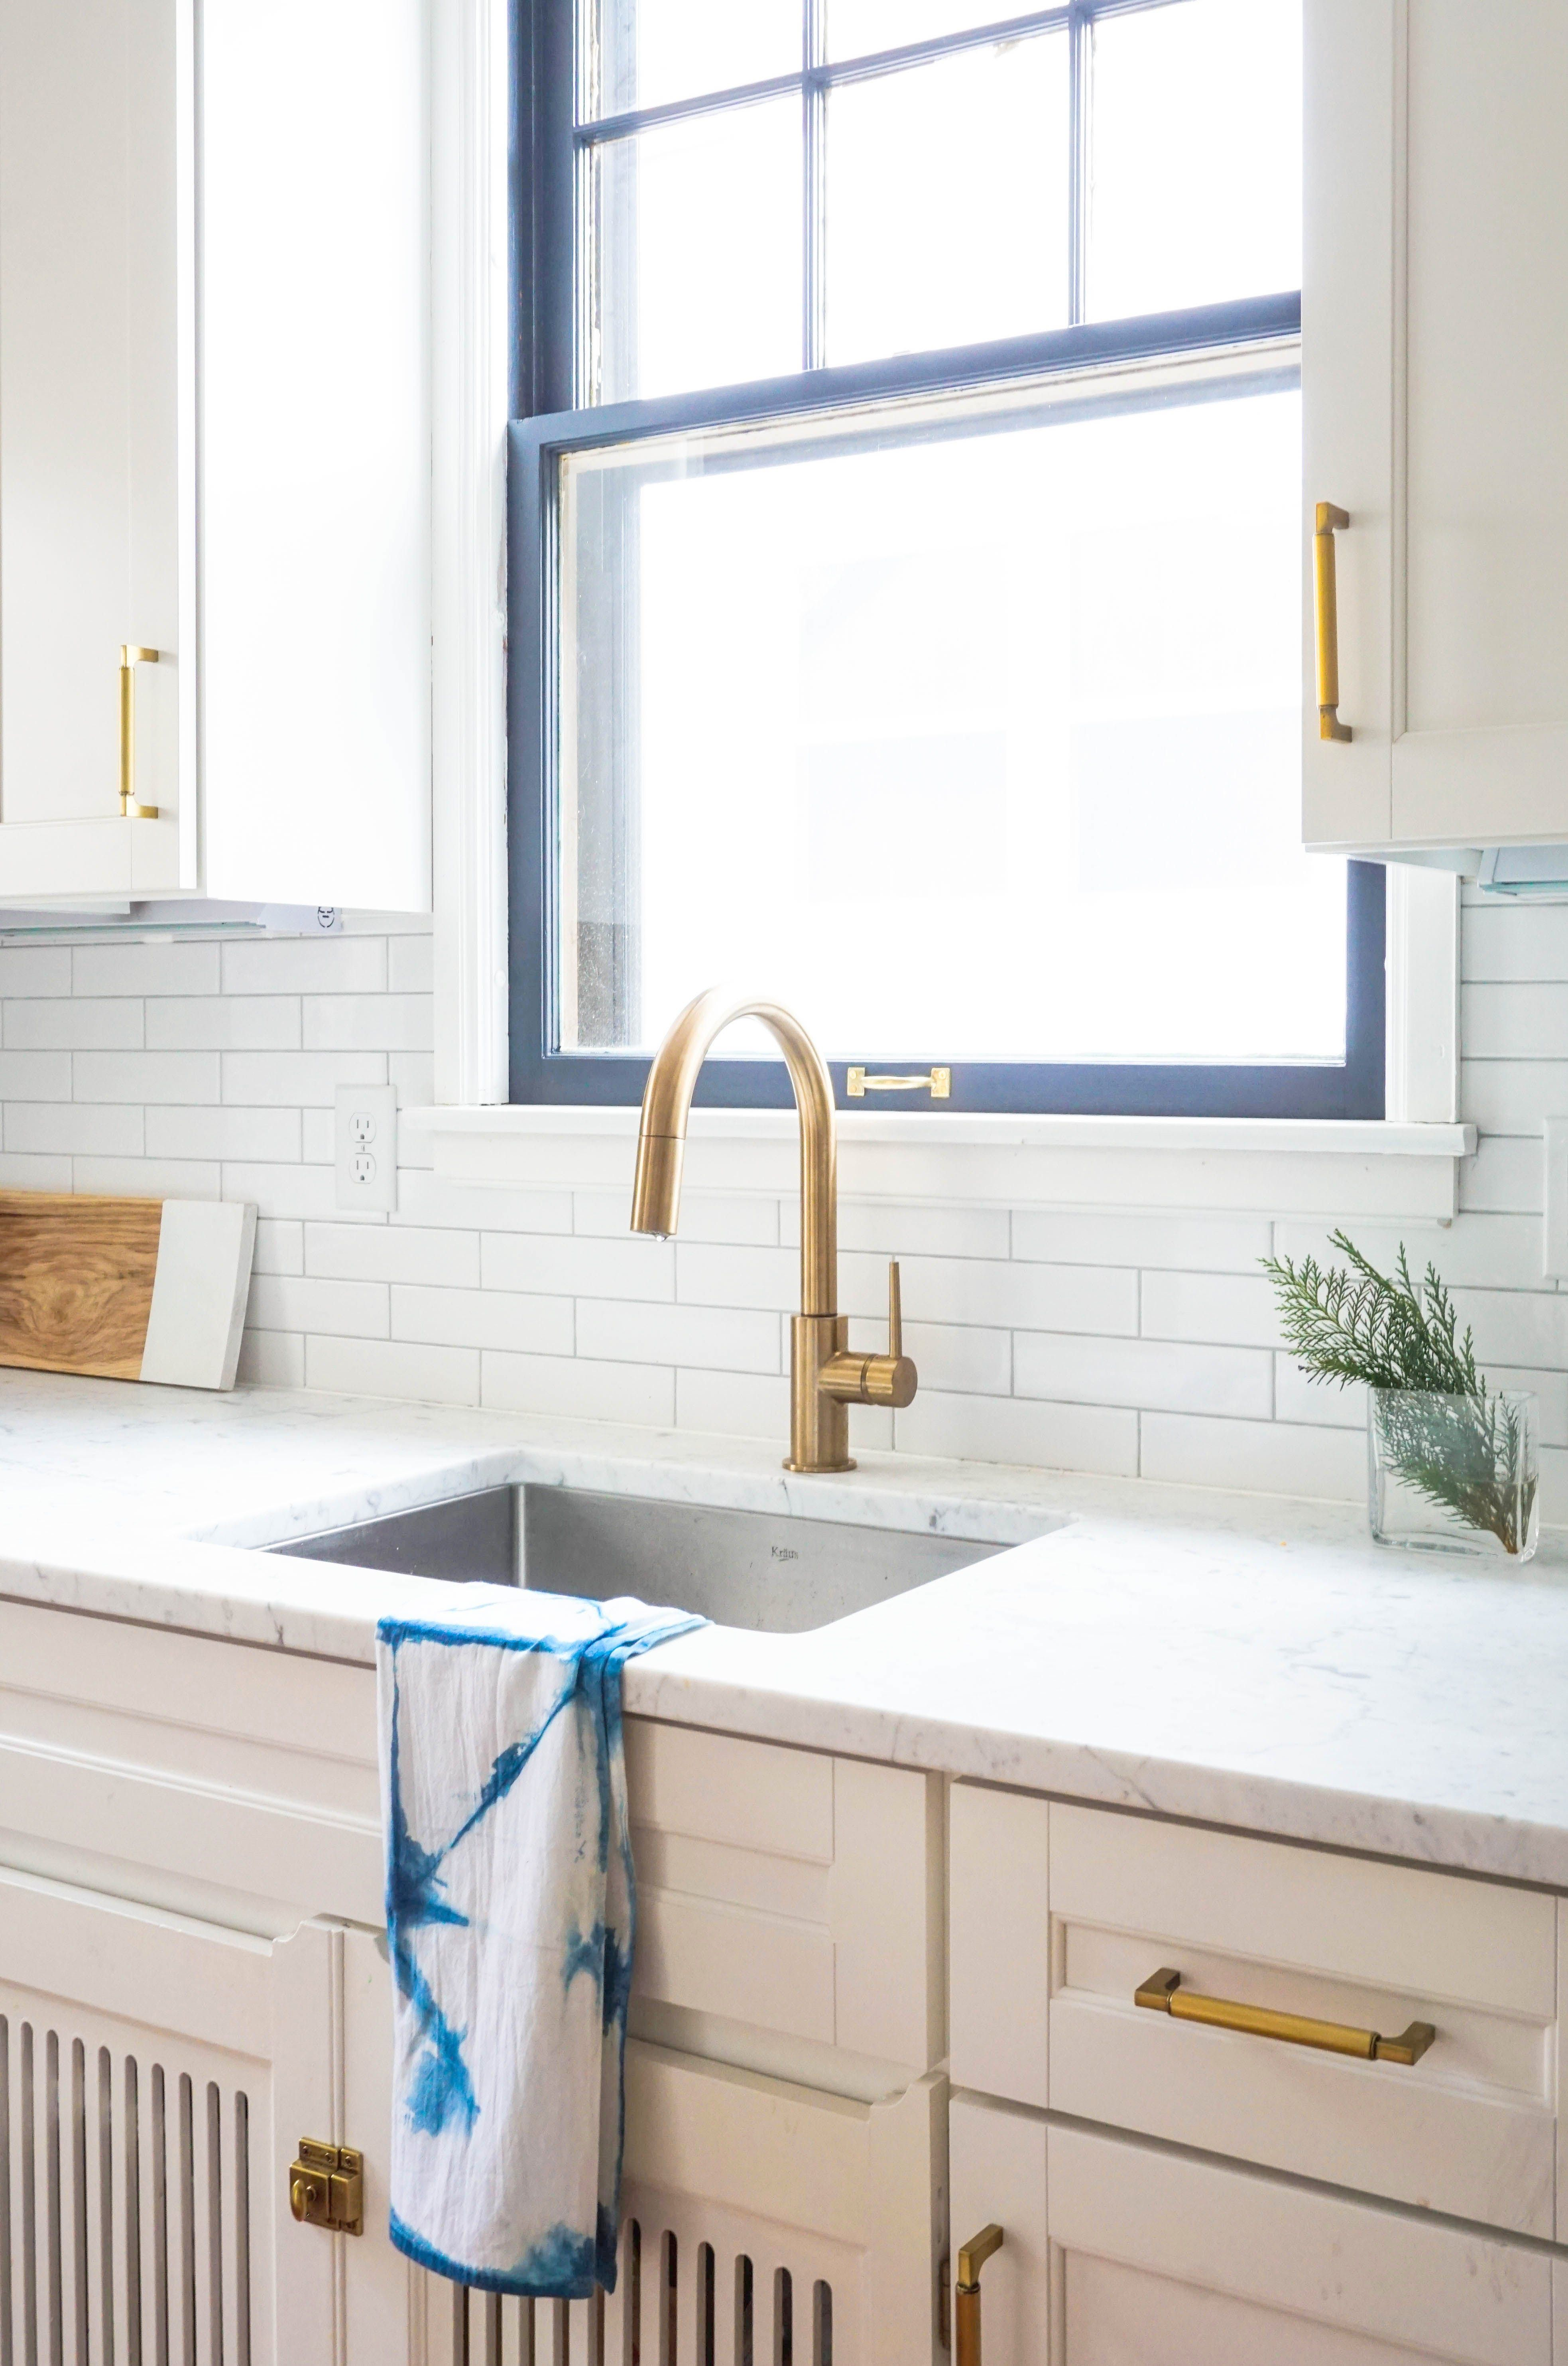 Kitchen sink without window  how to almost allergyproof your home  pinterest  apartment